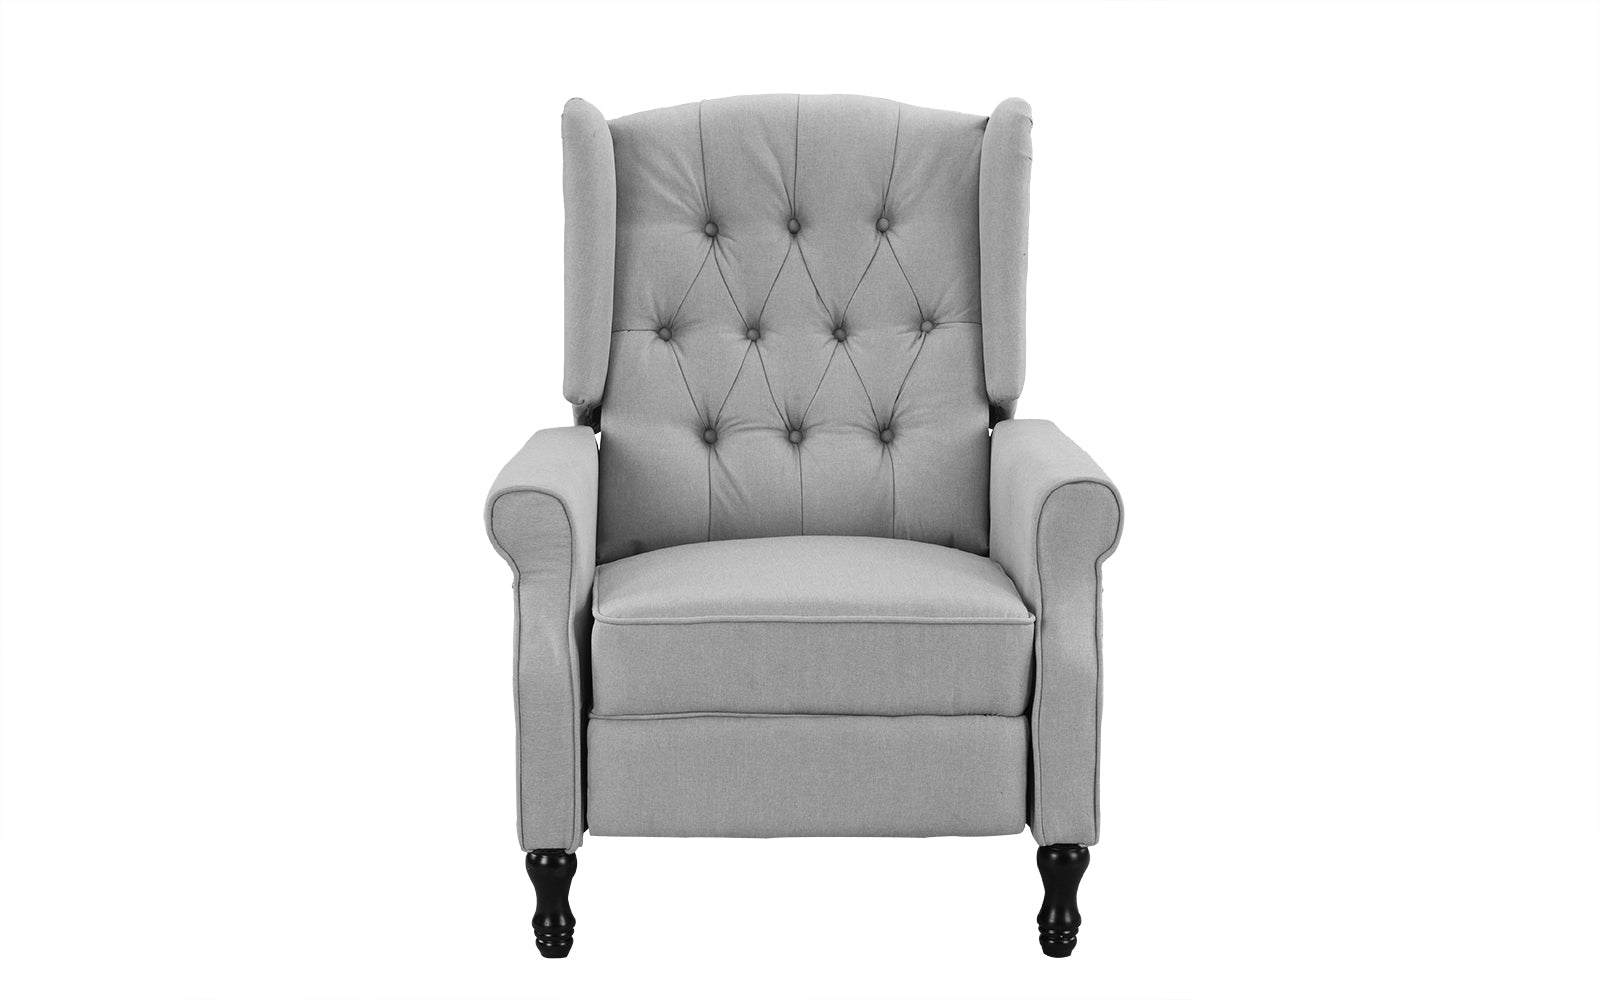 Reclining Armchair Image